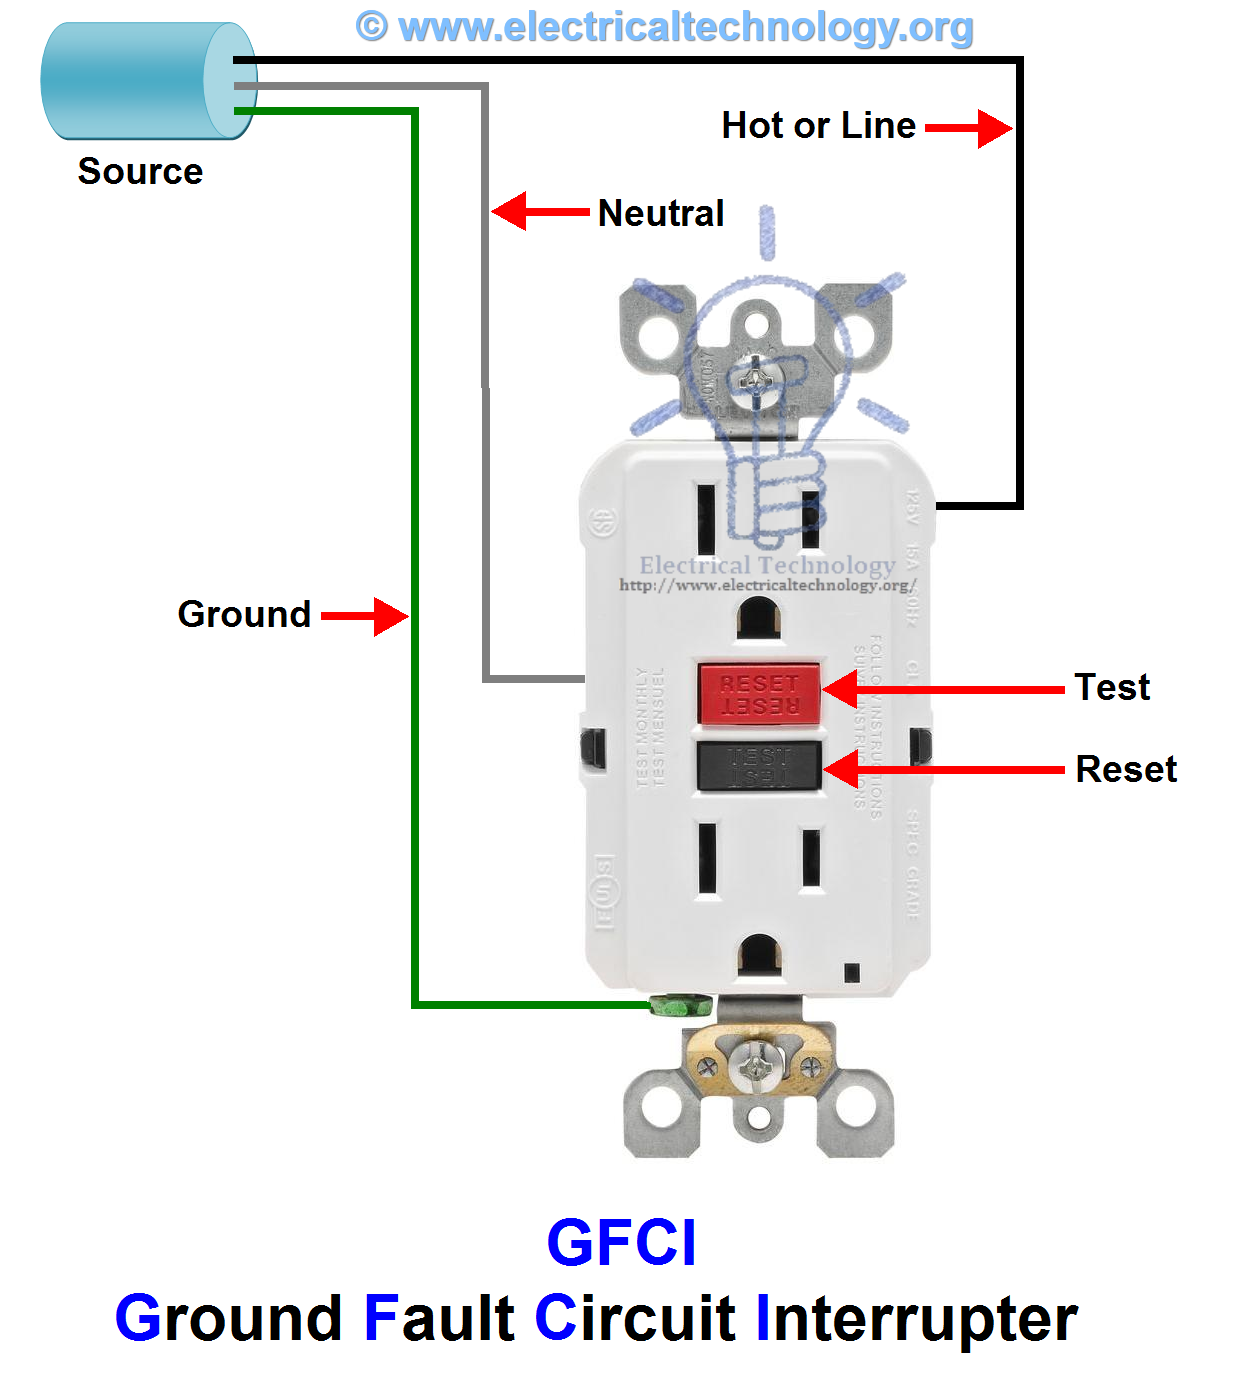 hight resolution of gfci ground fault circuit interrupter types working ground fault interrupter circuit diagram can39t reset a gfci outlet